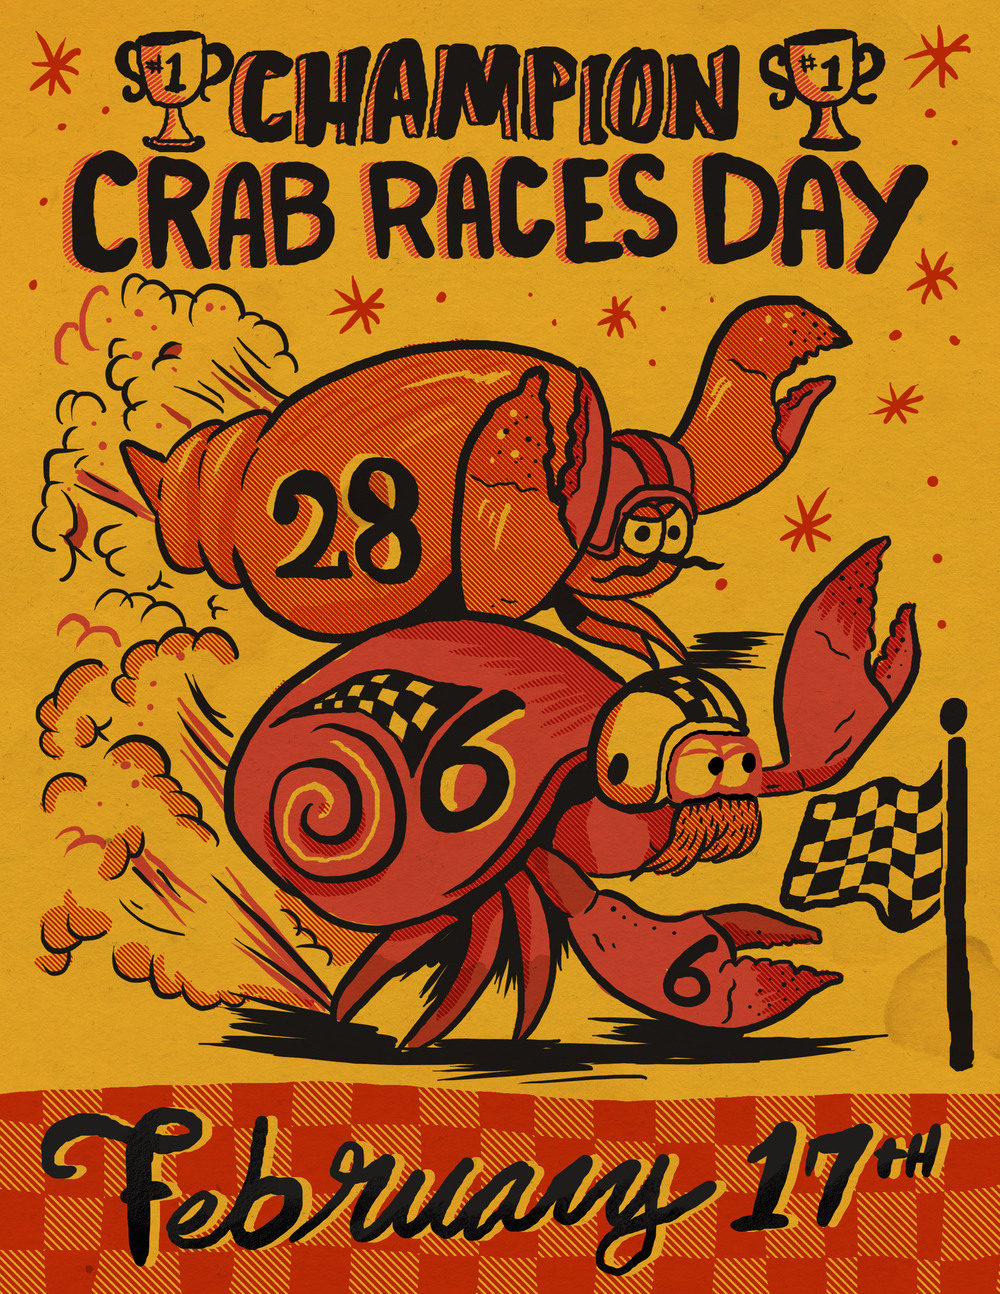 17_champion_crab_races.jpg